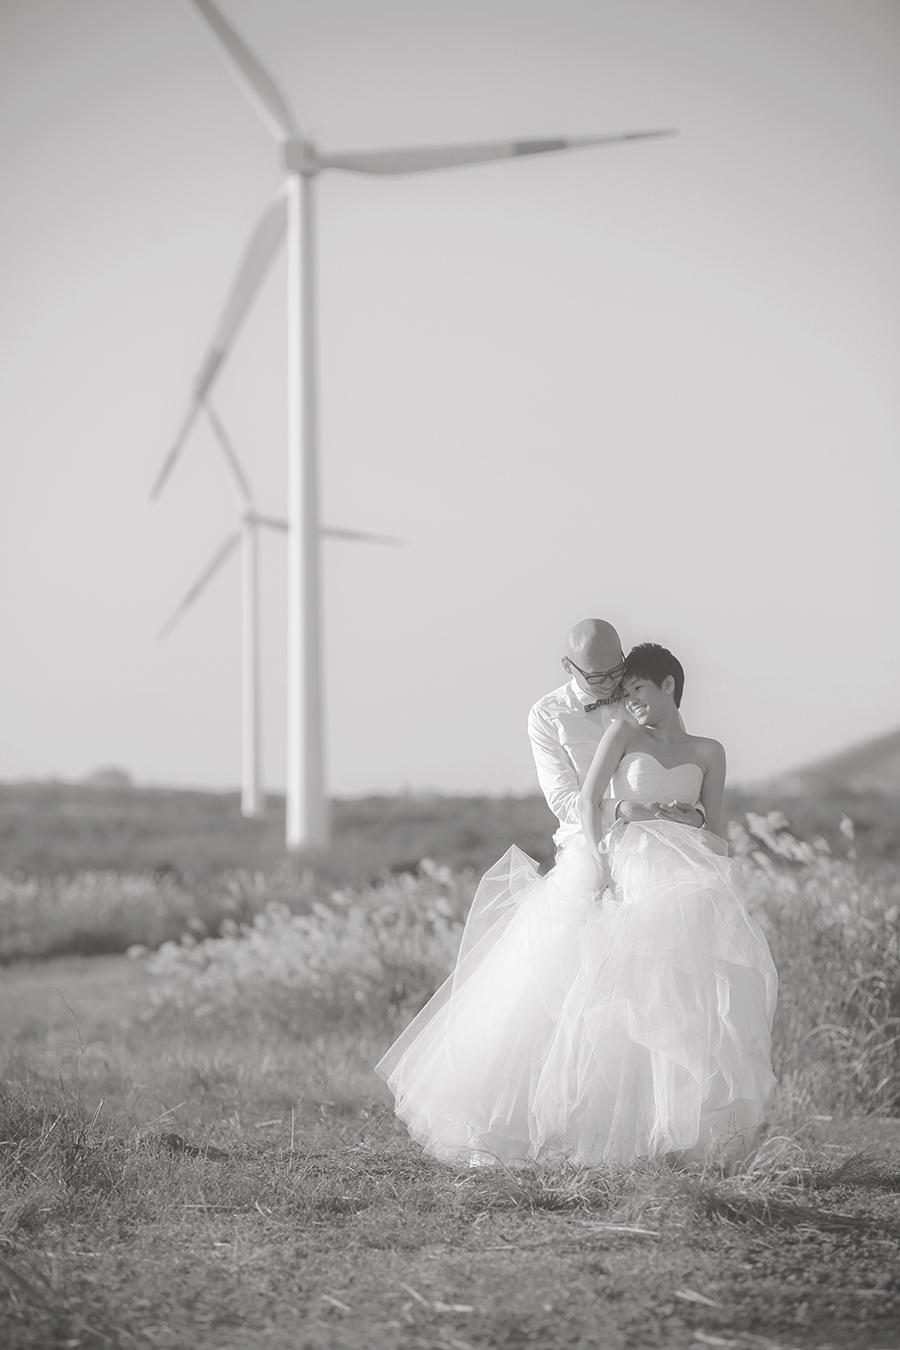 seoul jeju korea . wedding photography by kurt ahs . steve+chloe . 8054.jpg